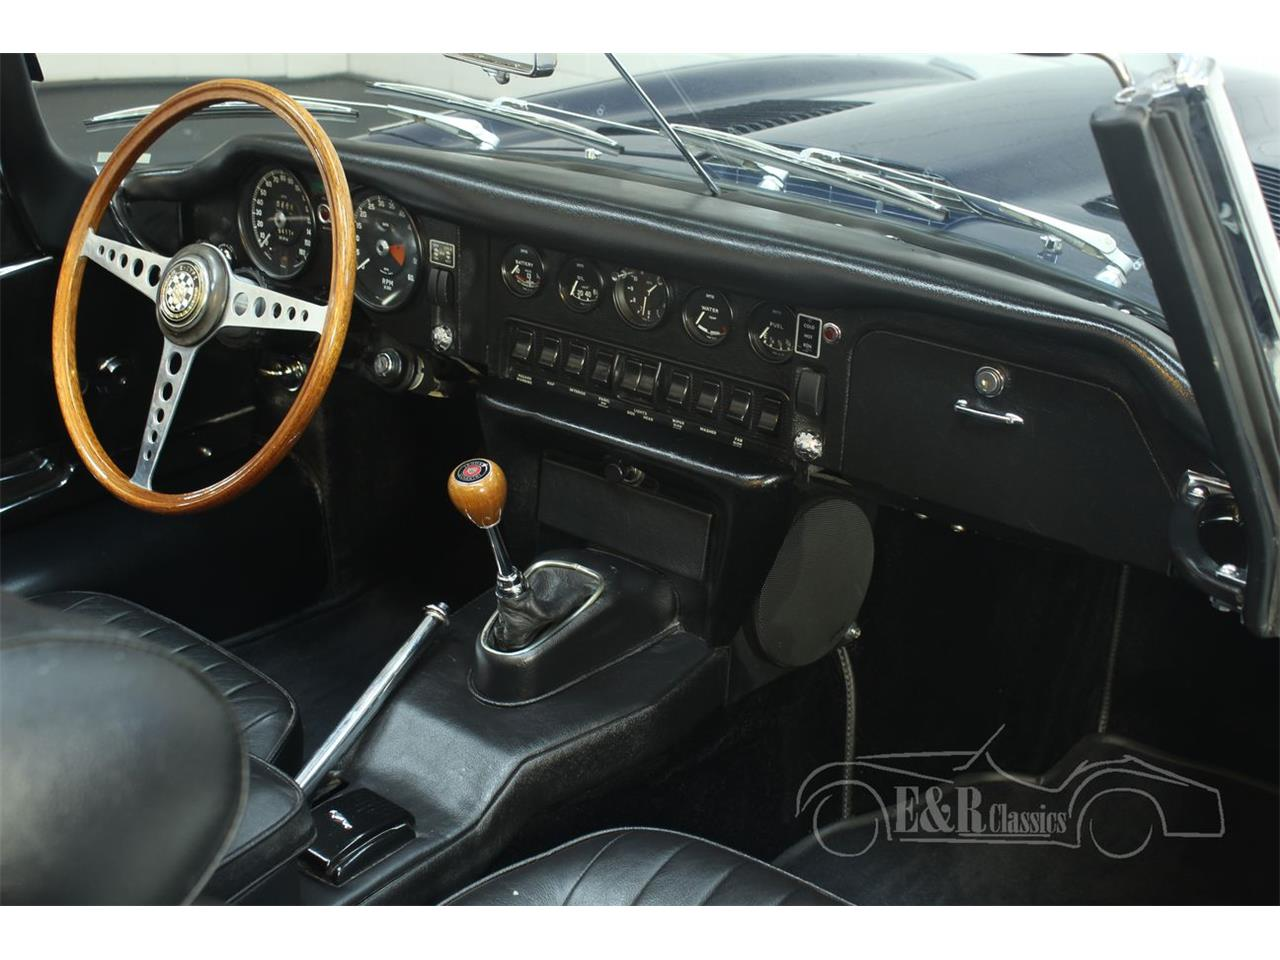 Large Picture of 1969 E-Type - $139,400.00 - Q45K